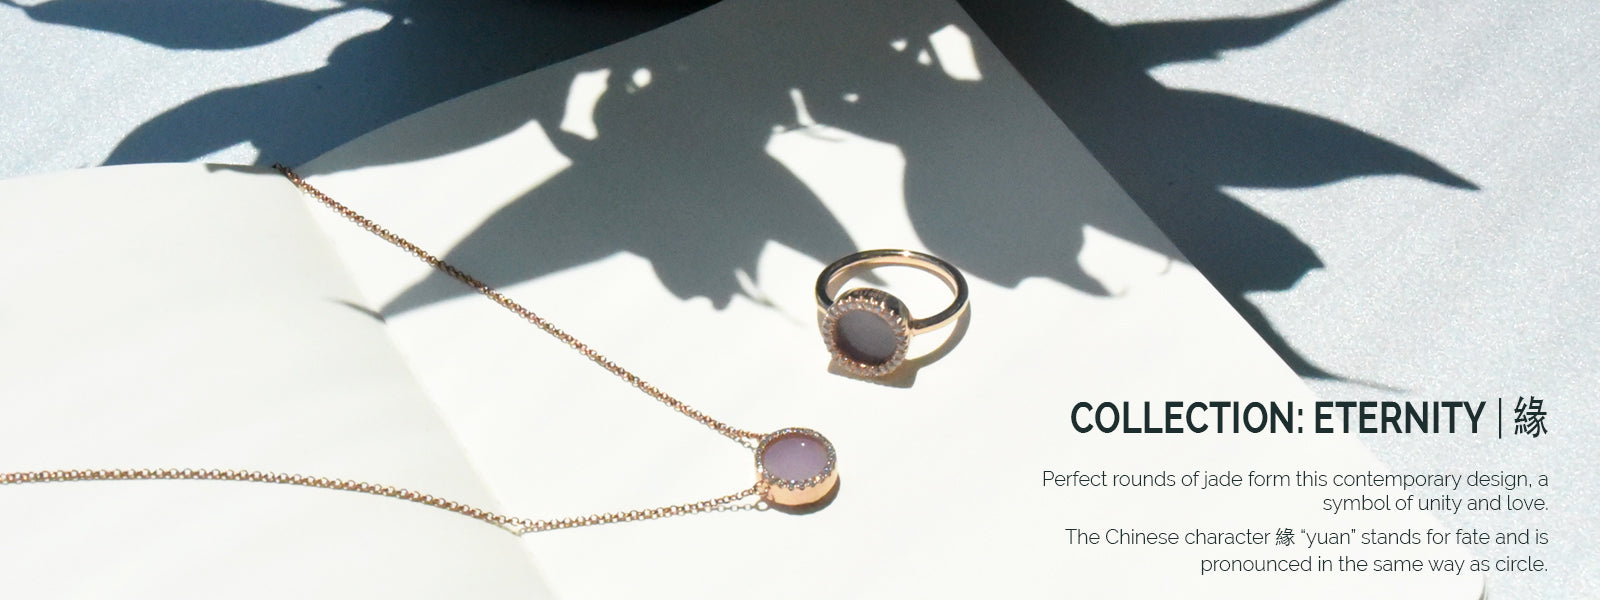 Eternity collection: lavender jade jewelry necklace and ring in modern minimal style